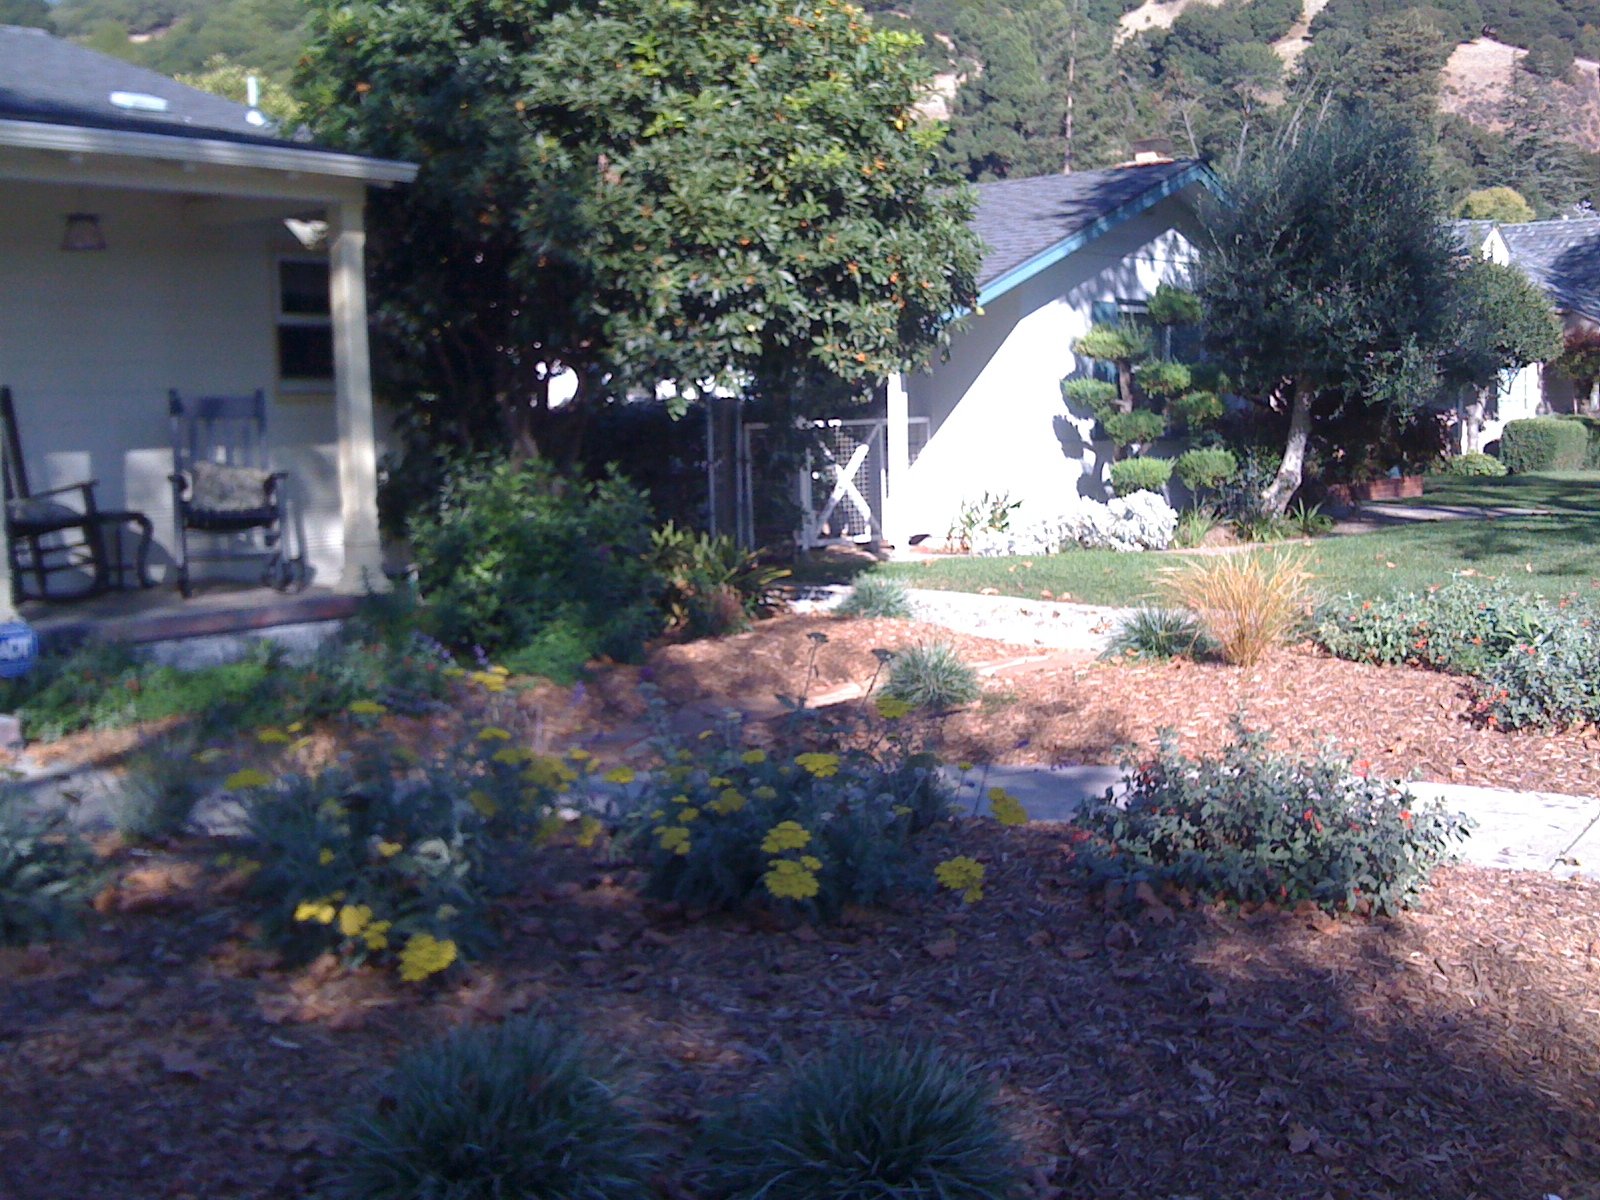 Drip irrigation, which is mulched over in this picture, greatly increases this garden's water efficiency.